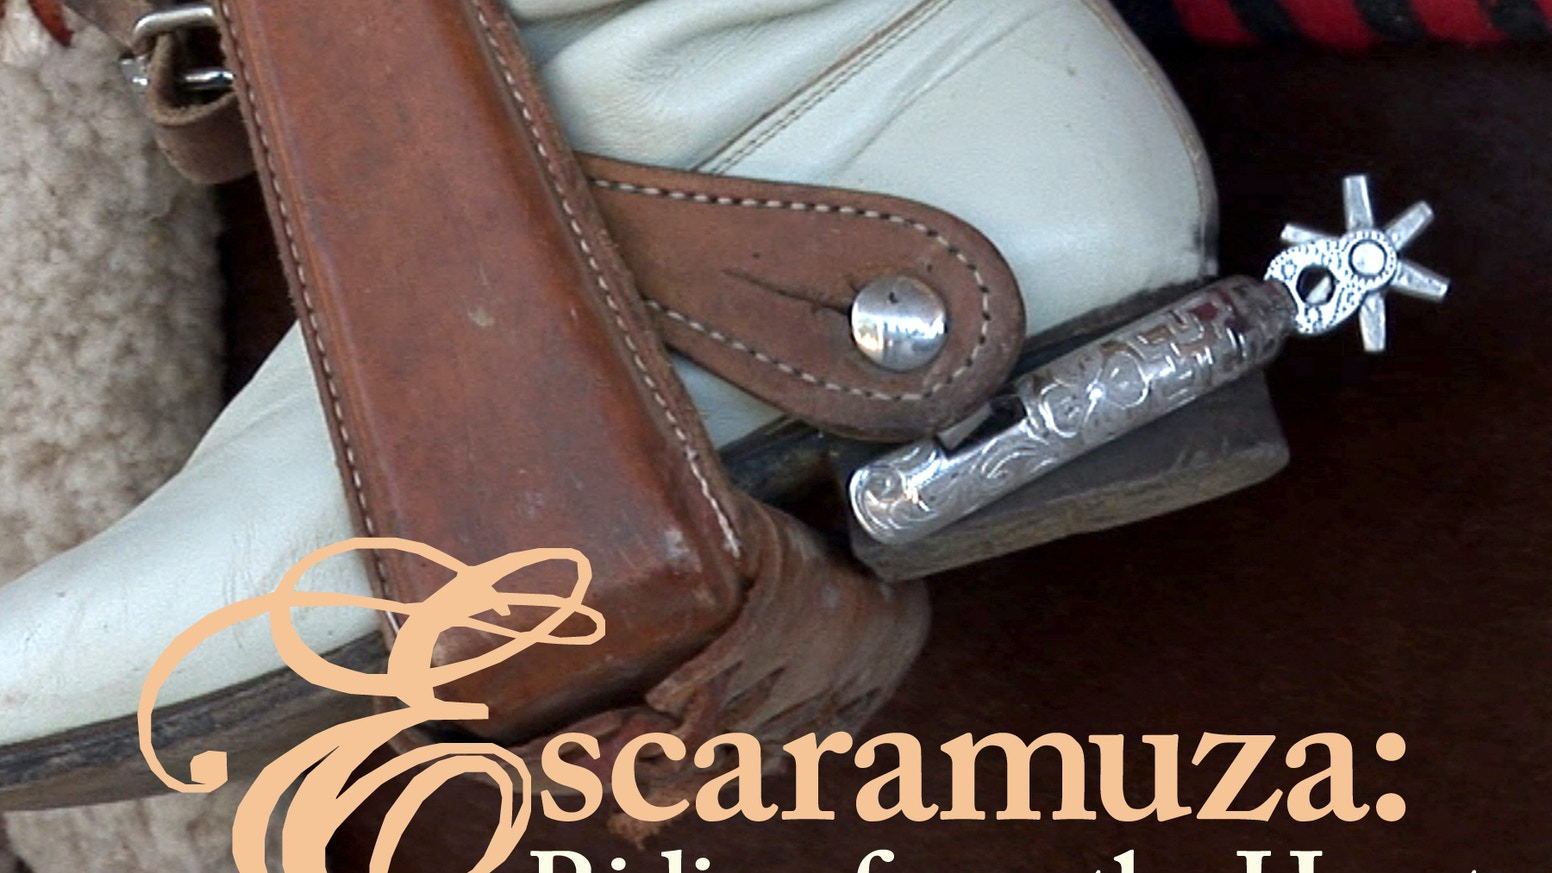 Escaramuza: Riding from the Heart (a feature documentary) by